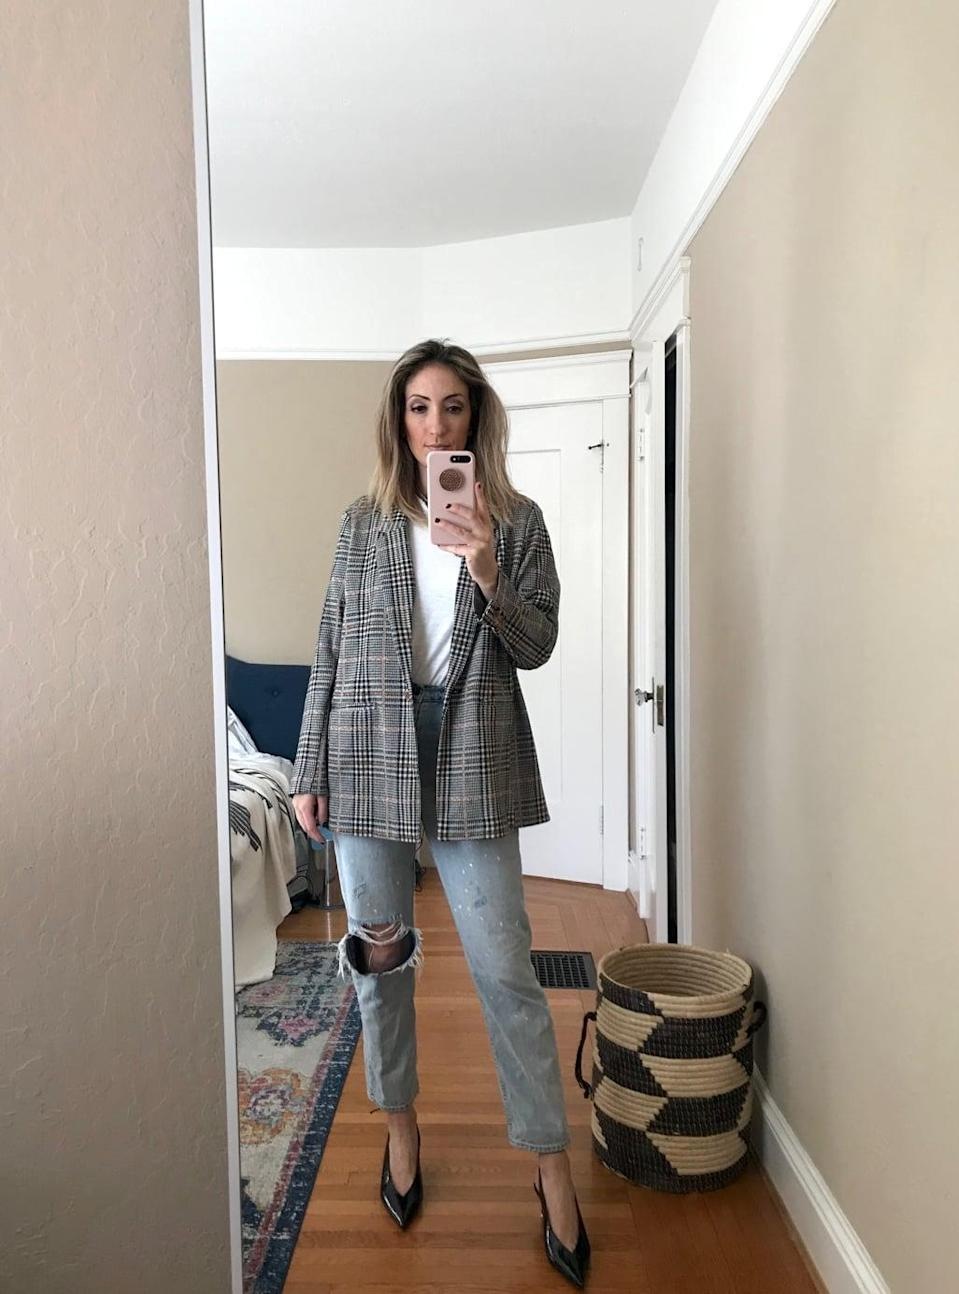 """<p><strong>Item:</strong> <span>Old Navy Patterned Boyfriend Blazer</span> ($45, originally $50)</p> <p><strong>What our editor said: </strong>""""I knew as soon as I unfurled the jacket from its packaging, this is exactly how I wanted to style it. The jacket is way softer than it looks on-site - and to be honest, much softer than every other blazer I own - so I wasn't sure how it would hang. But it blew my mind. It feels like a flannel on but wears like a blazer. This will definitely become my go-to spring look. It's essentially just jeans and a t-shirt!"""" - RB</p> <p>If you want to read more, <a href=""""https://www.popsugar.com/fashion/best-boyfriend-blazer-at-old-navy-47231914"""" class=""""link rapid-noclick-resp"""" rel=""""nofollow noopener"""" target=""""_blank"""" data-ylk=""""slk:here is the complete review"""">here is the complete review</a>.</p>"""